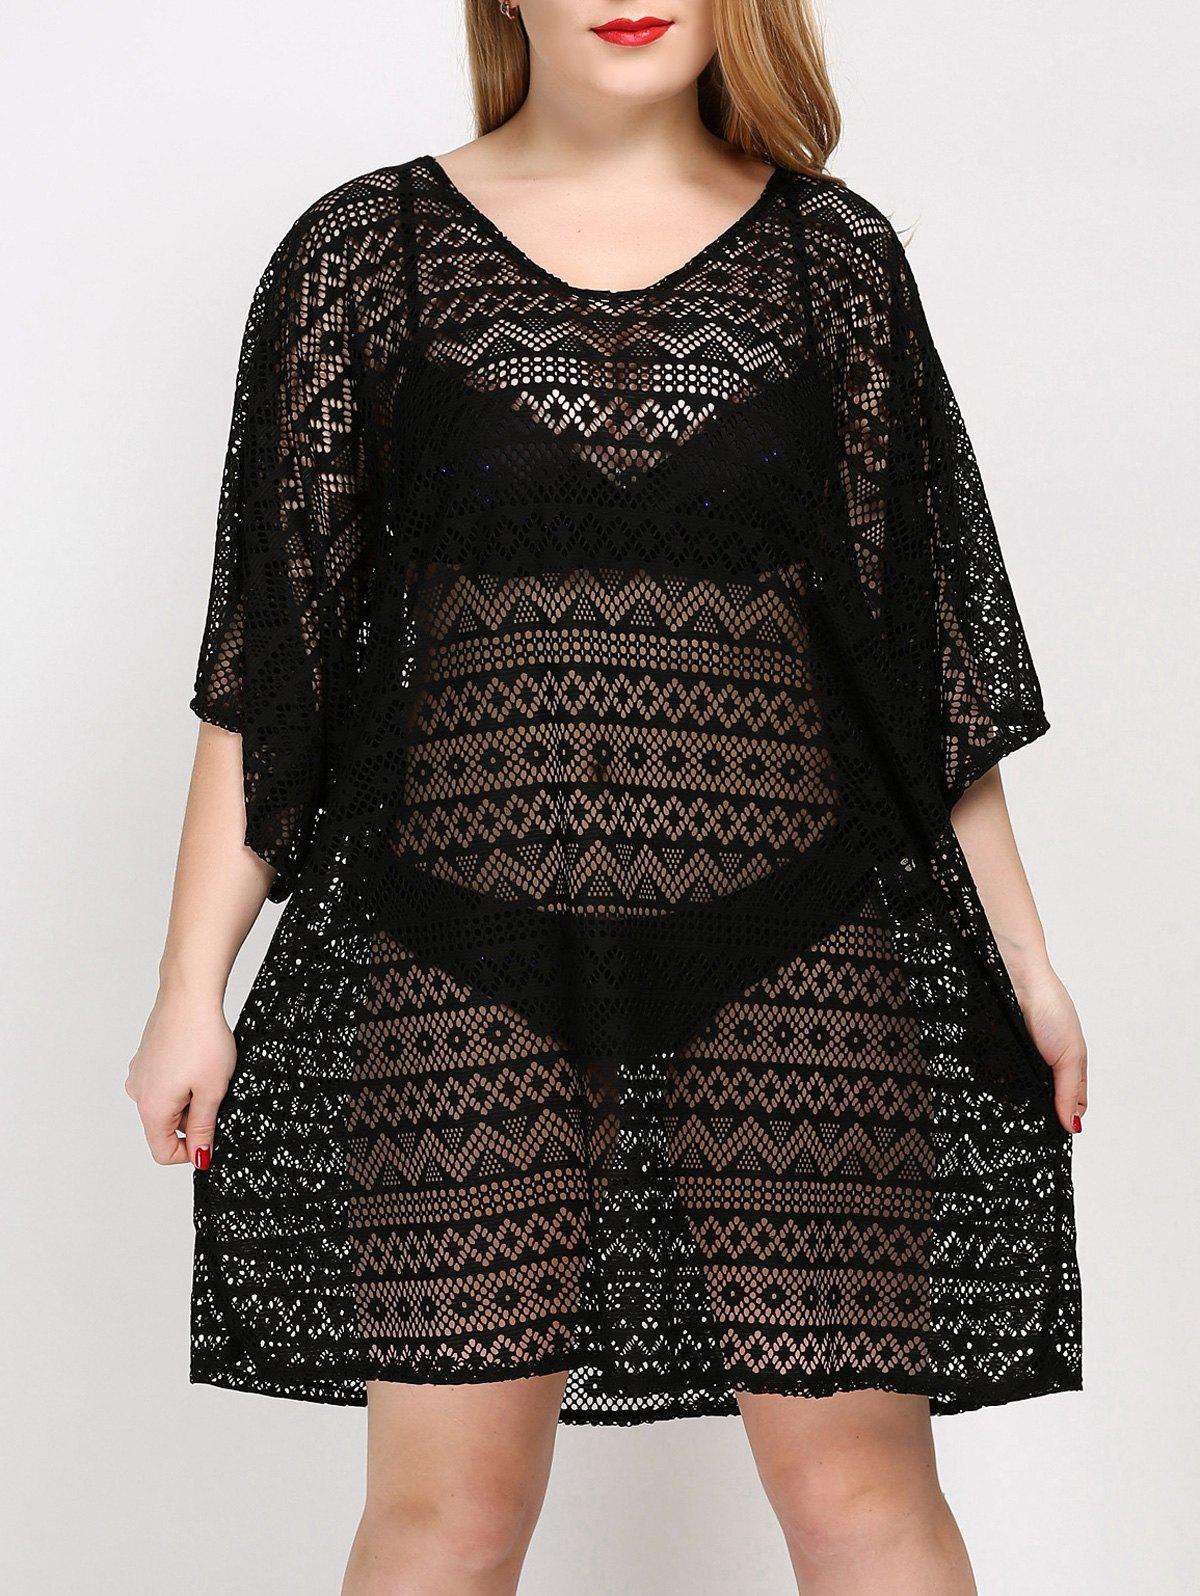 Plus Size Backless Cover Up DressWOMEN<br><br>Size: ONE SIZE; Color: BLACK; Gender: For Women; Swimwear Type: Cover-Up; Material: Polyester; Bra Style: One-piece; Support Type: Wire Free; Pattern Type: Solid; Waist: Natural; Weight: 0.3000kg; Package Contents: 1 x Cover Up;